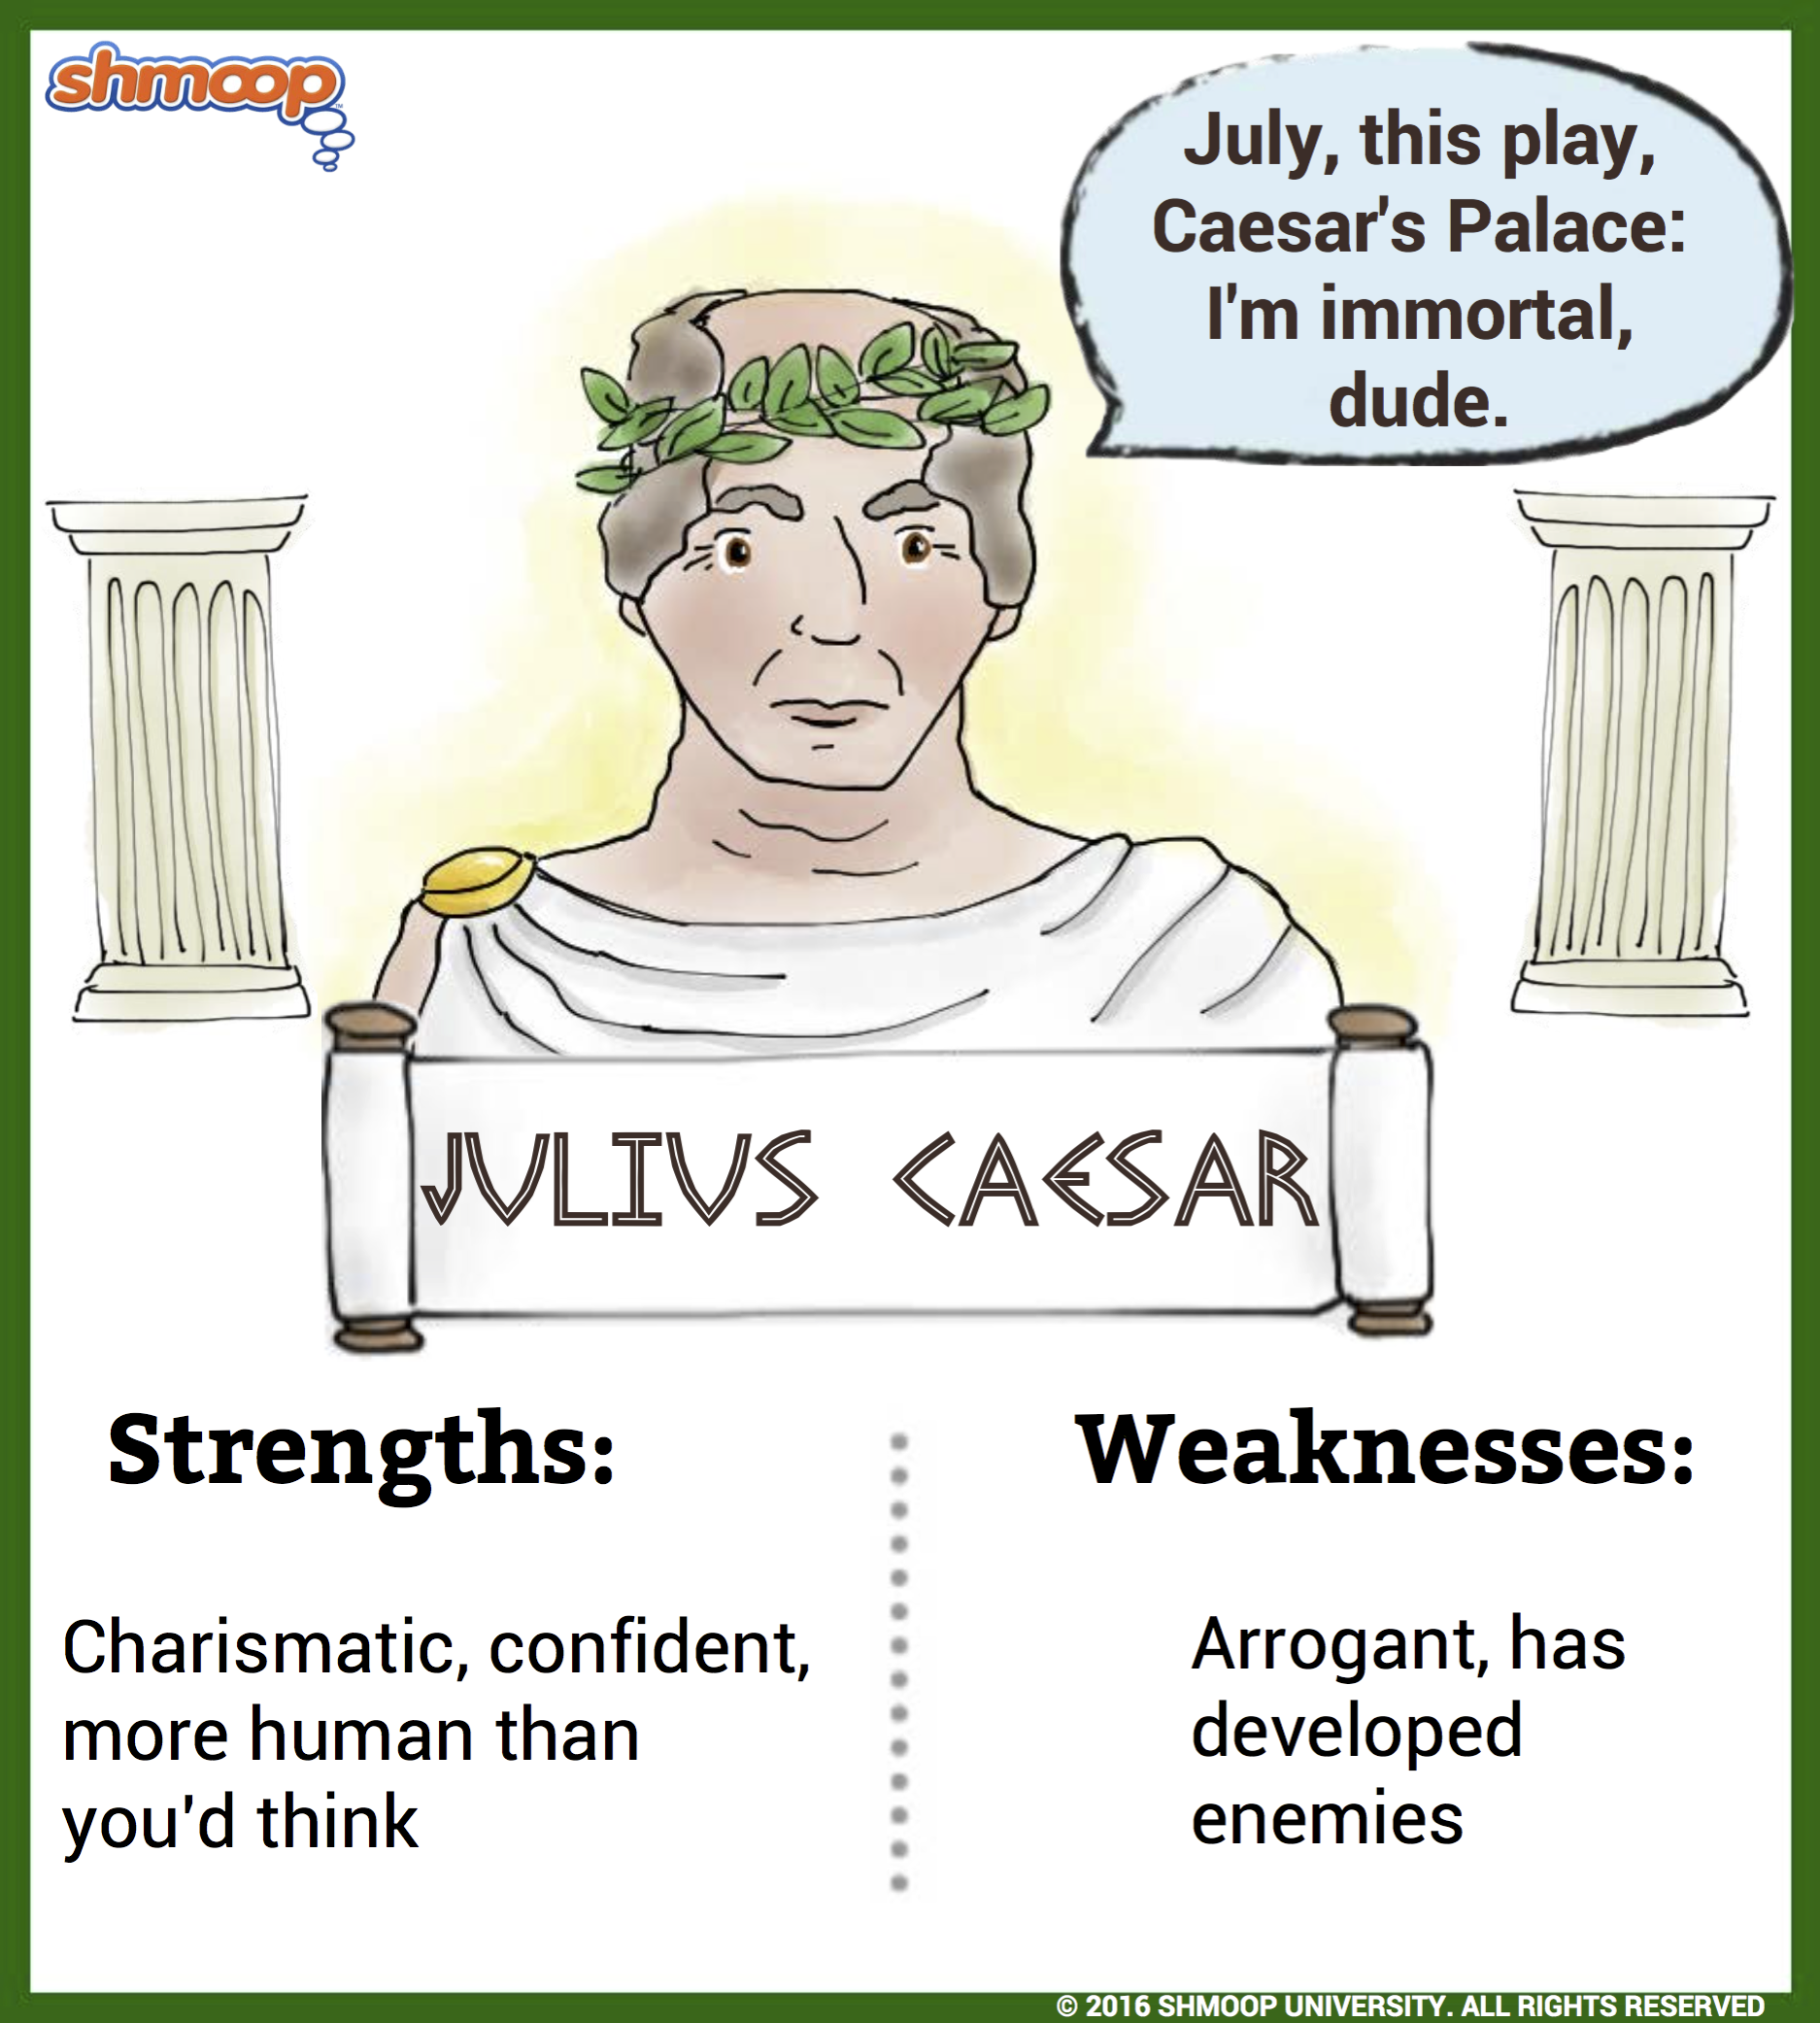 julius caesar essay test Essay on biography of julius caesar 2022 words | 9 pages biography of julius caesar julius caesar was a strong leader for the romans who changed the course of the history of the greco - roman world decisively and irreversibly.